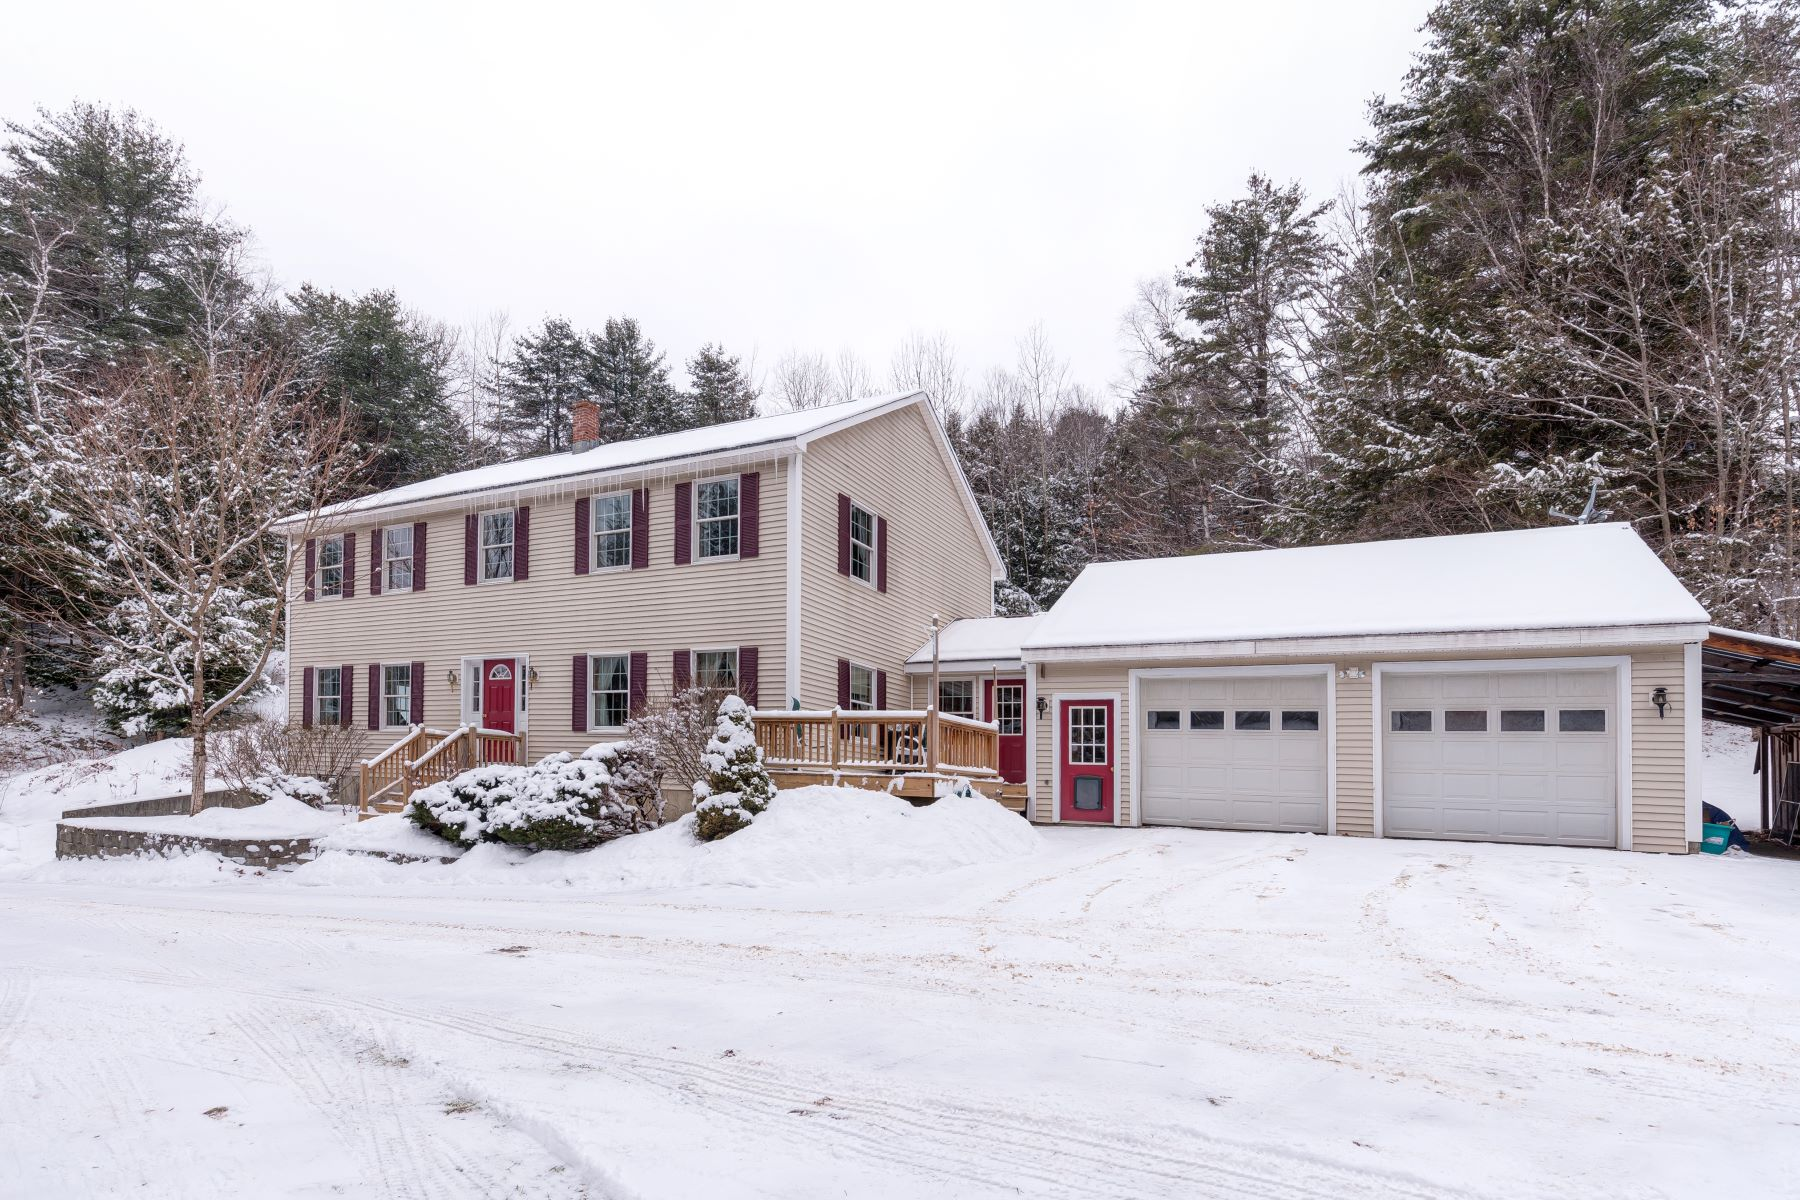 Single Family Home for Sale at 1350 Barker, Thetford Thetford, Vermont, 05058 United States